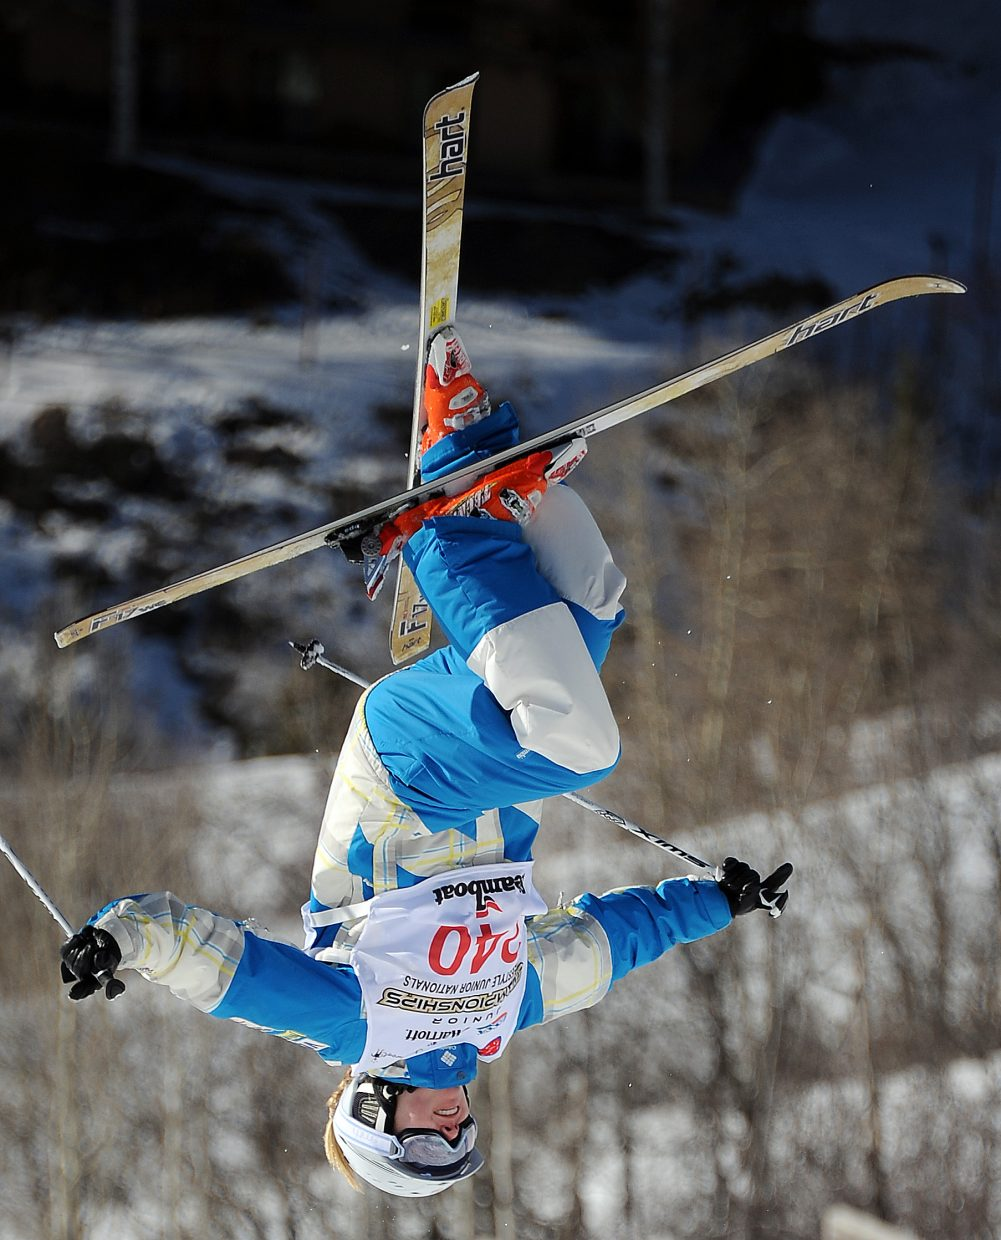 Ali Kariotis flips off the bottom kicker during the moguls event at the Freestyle Junior Nationals in Steamboat Springs on Friday. She won the women's event.